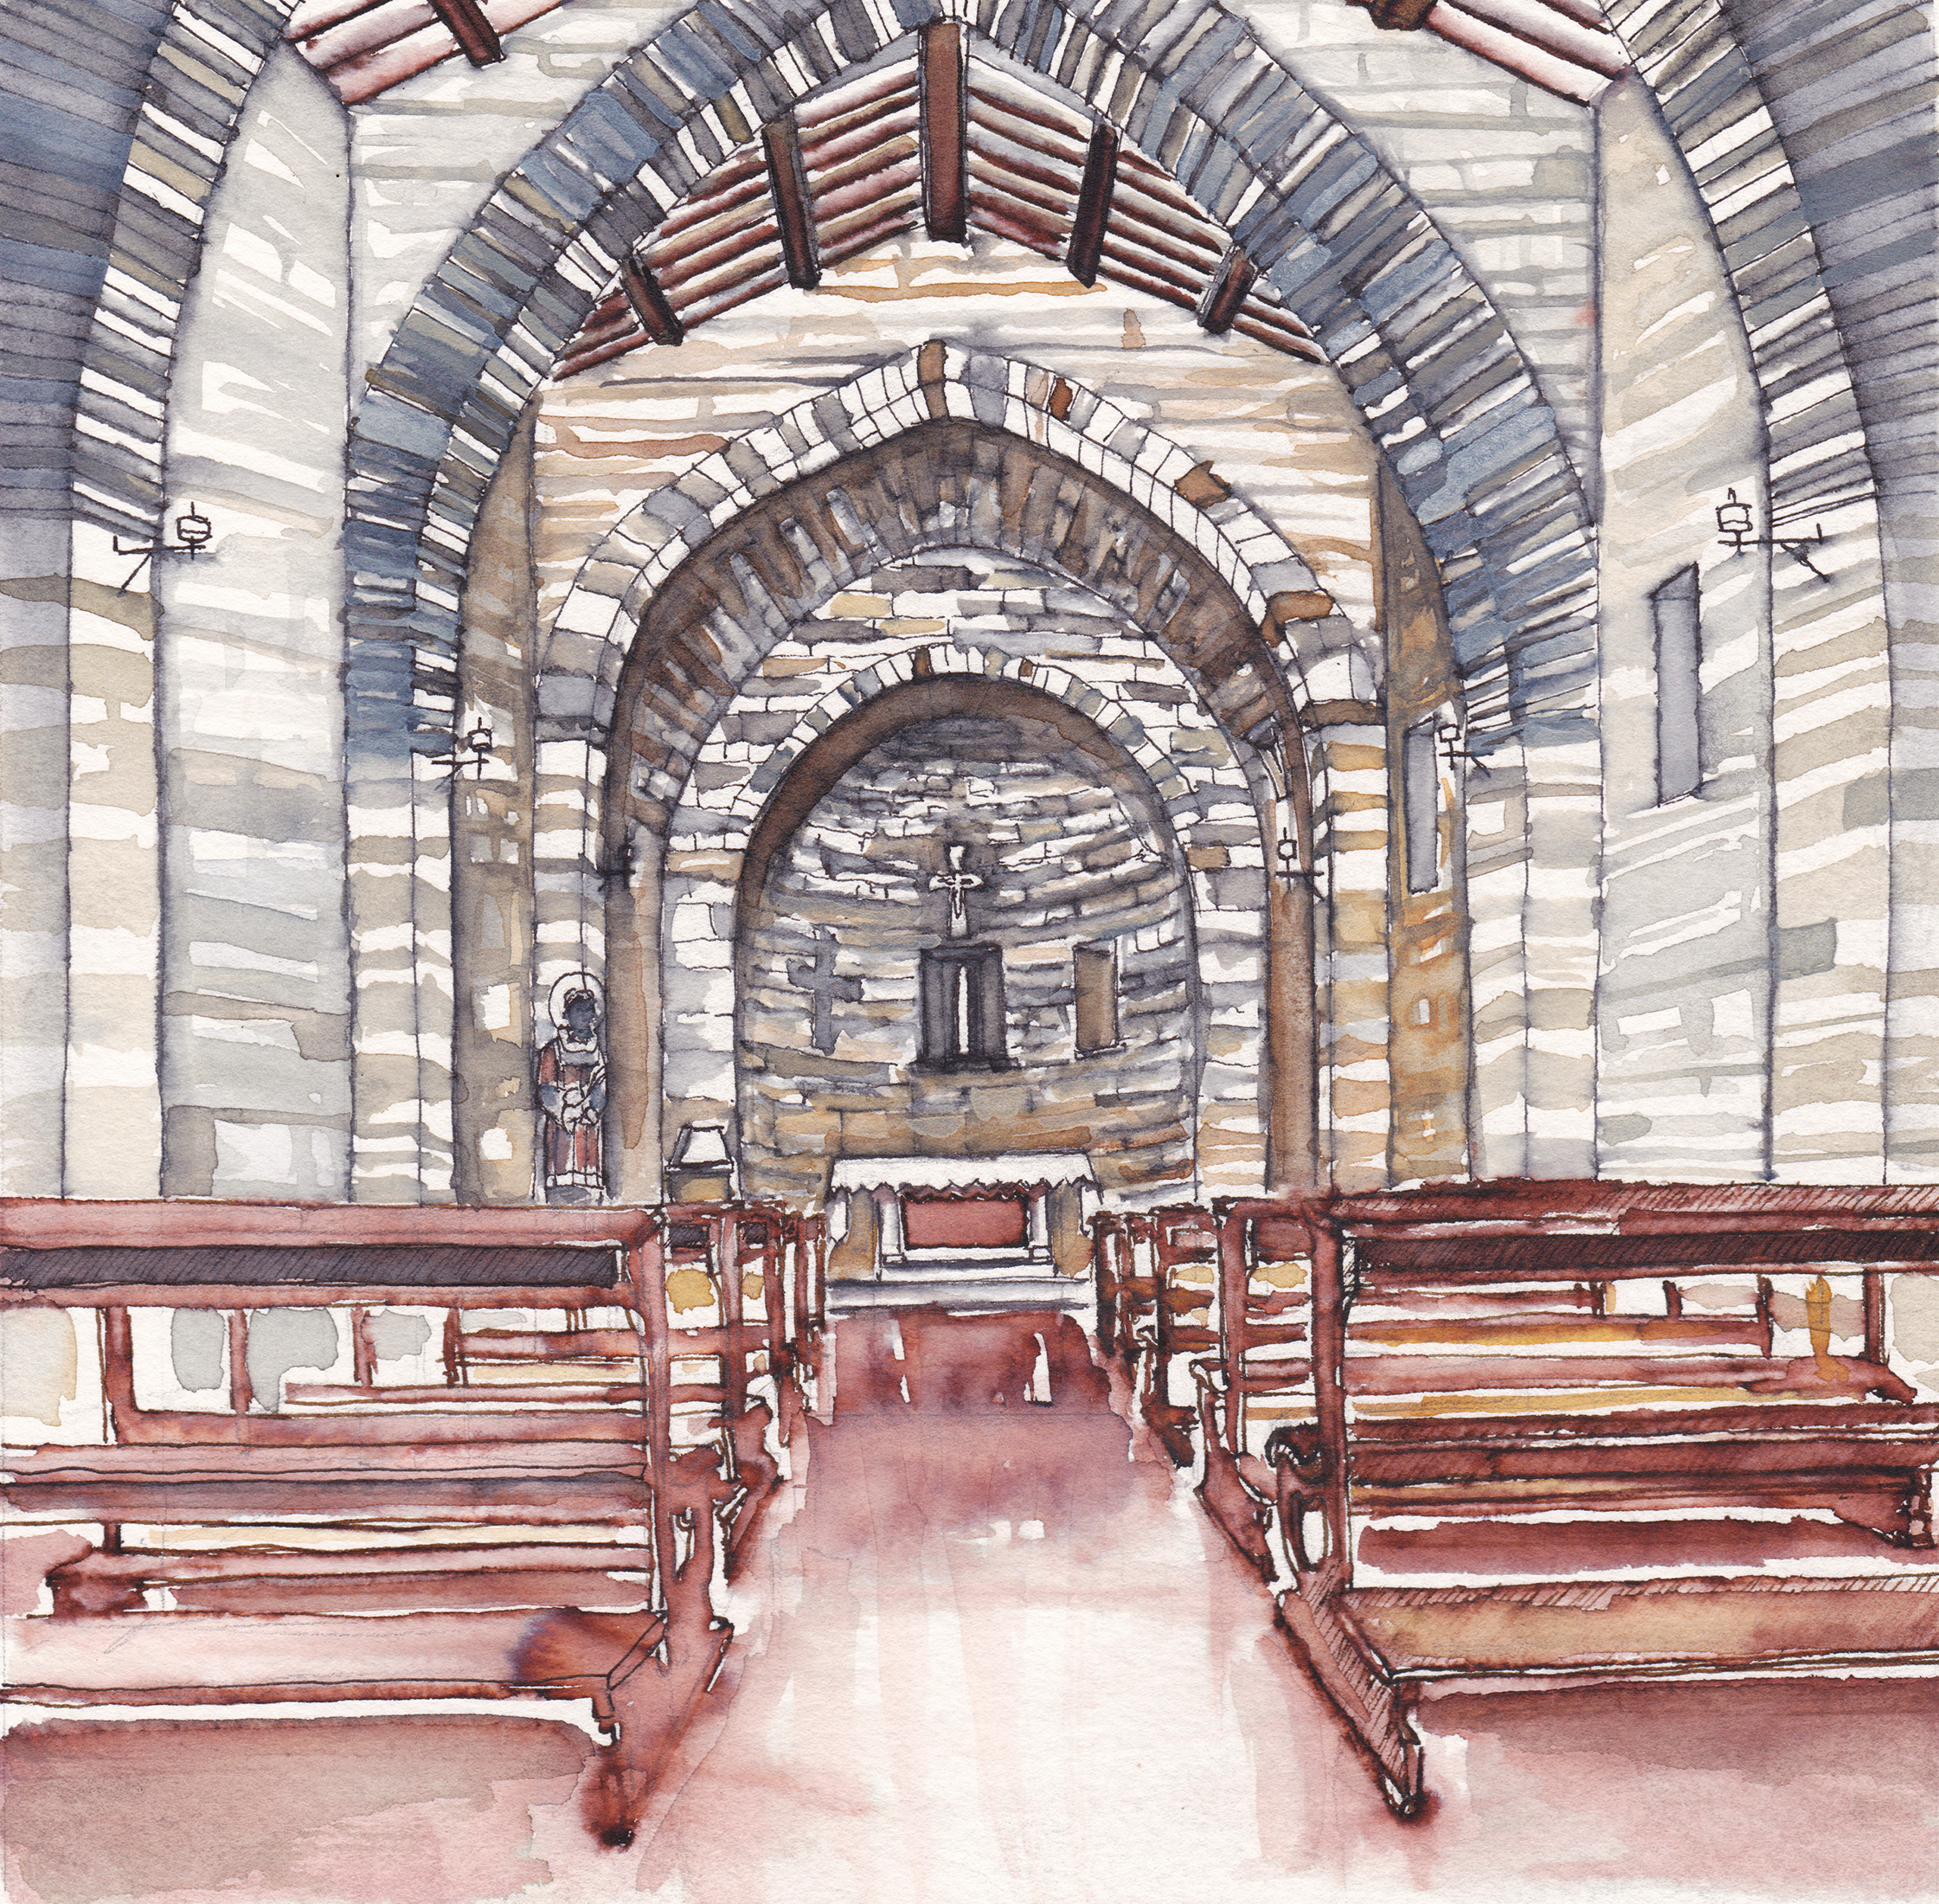 Santo Stefano Interior, Assisi, Italy, Watercolor on paper, 9 x 9 inches, 2019